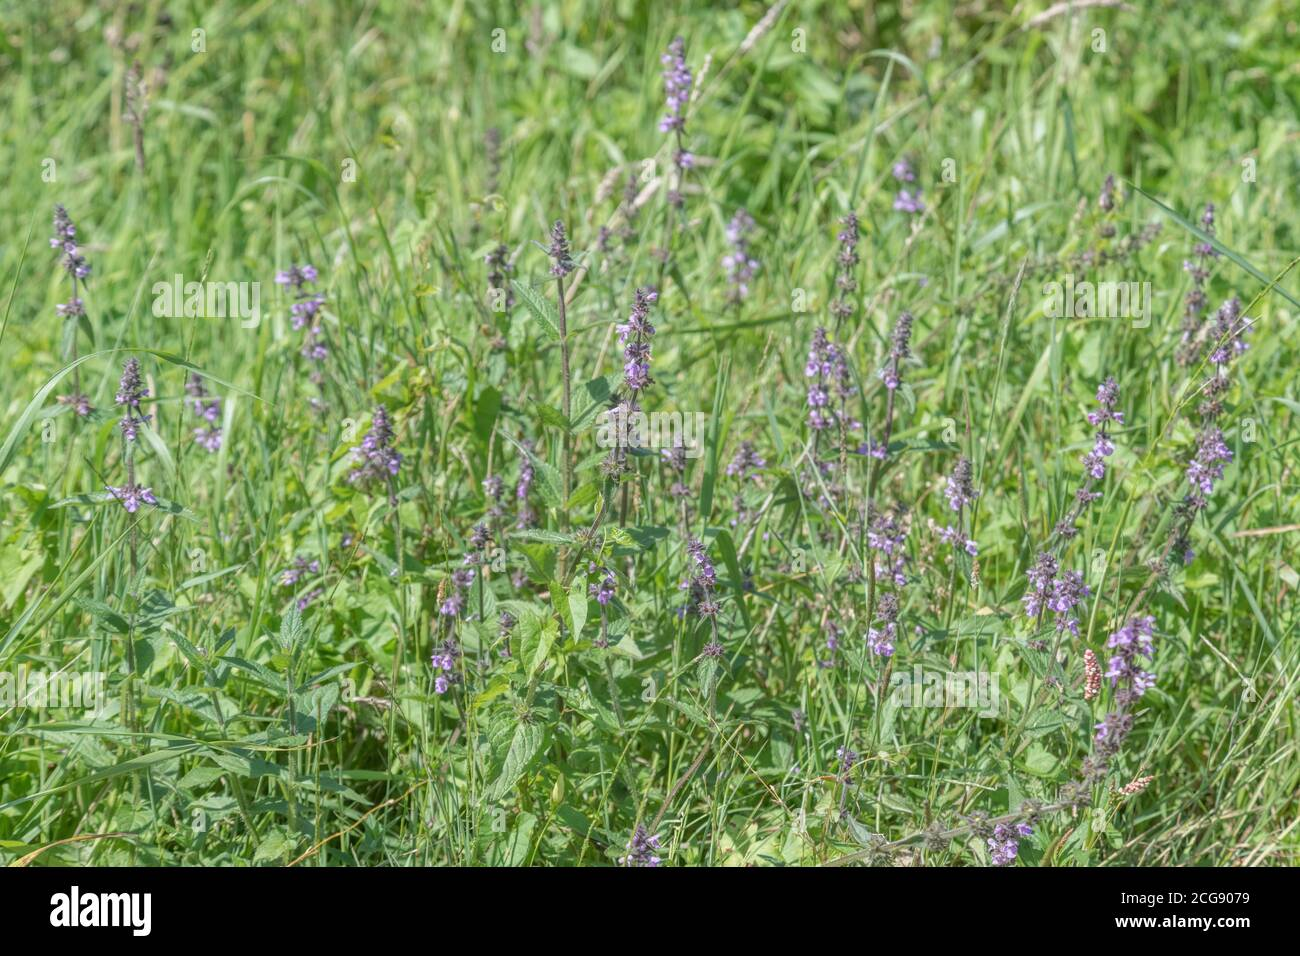 Patch of purple flowered Marsh Woundwort / Stachys palustris seen growing in damp field corner. Former medicinal plant used in herbal remedies. Stock Photo